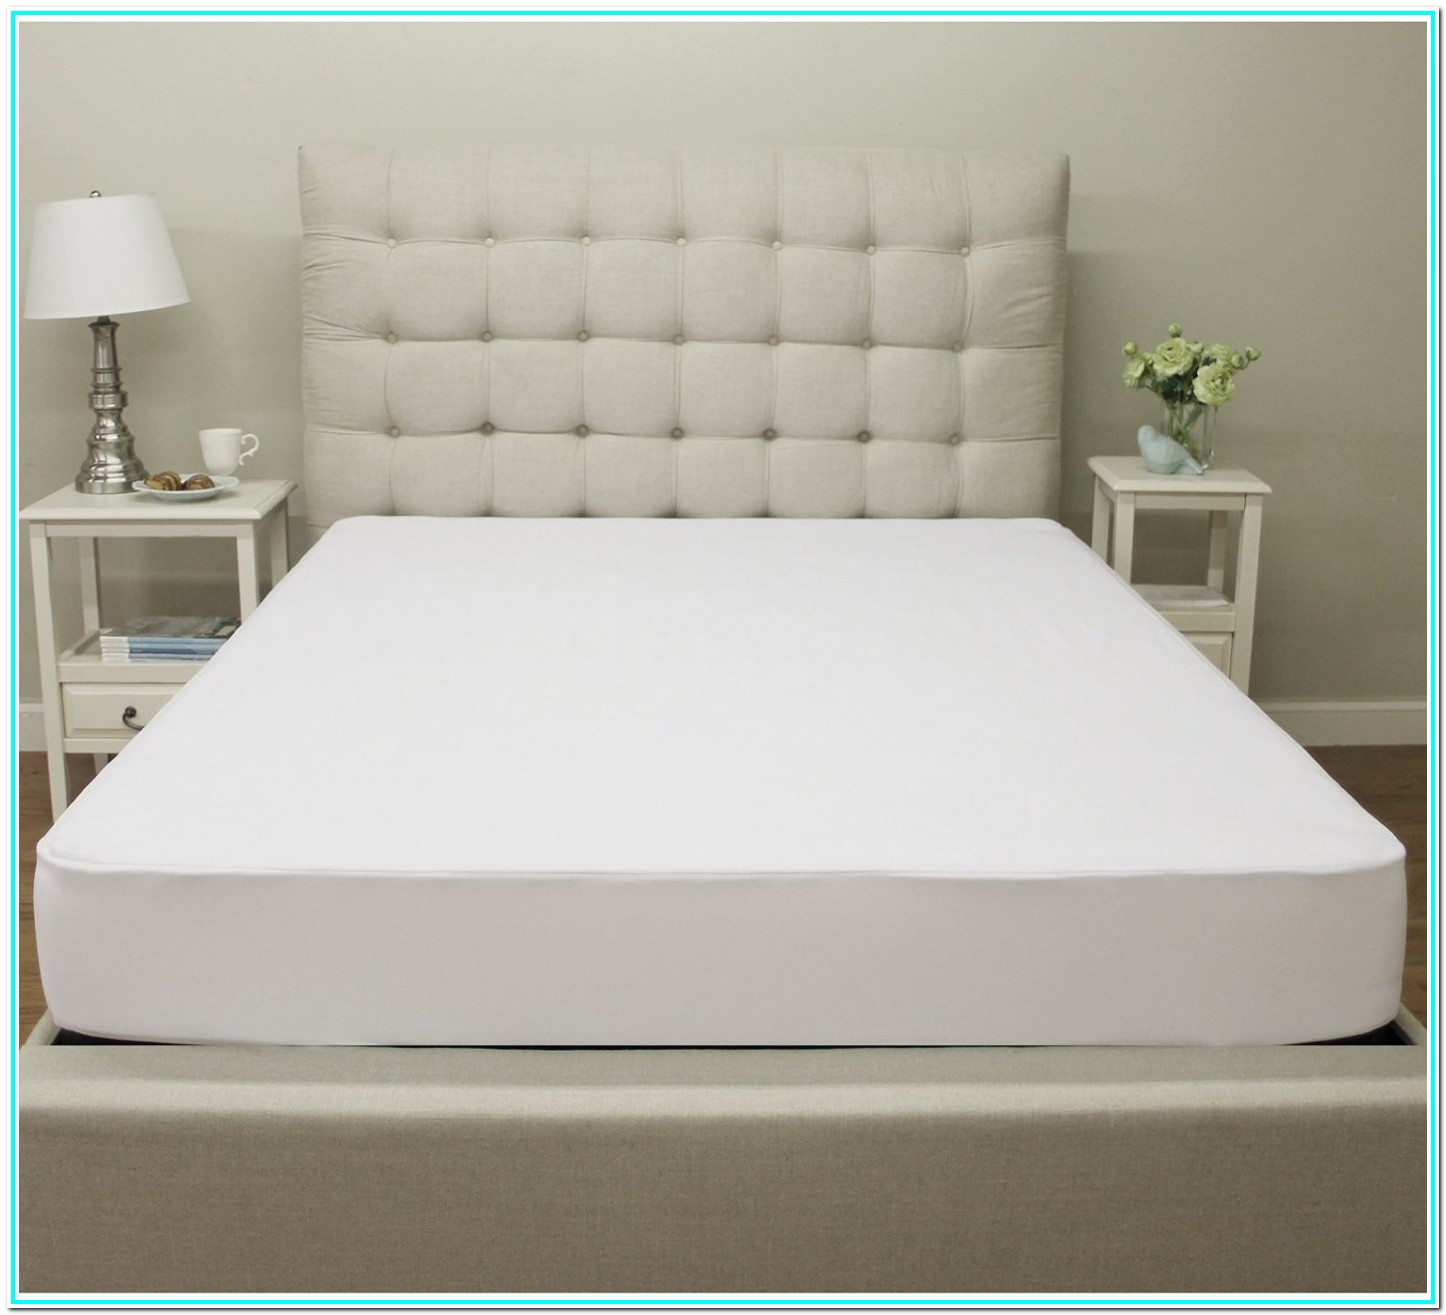 Queen Size Bed Mattress Protector